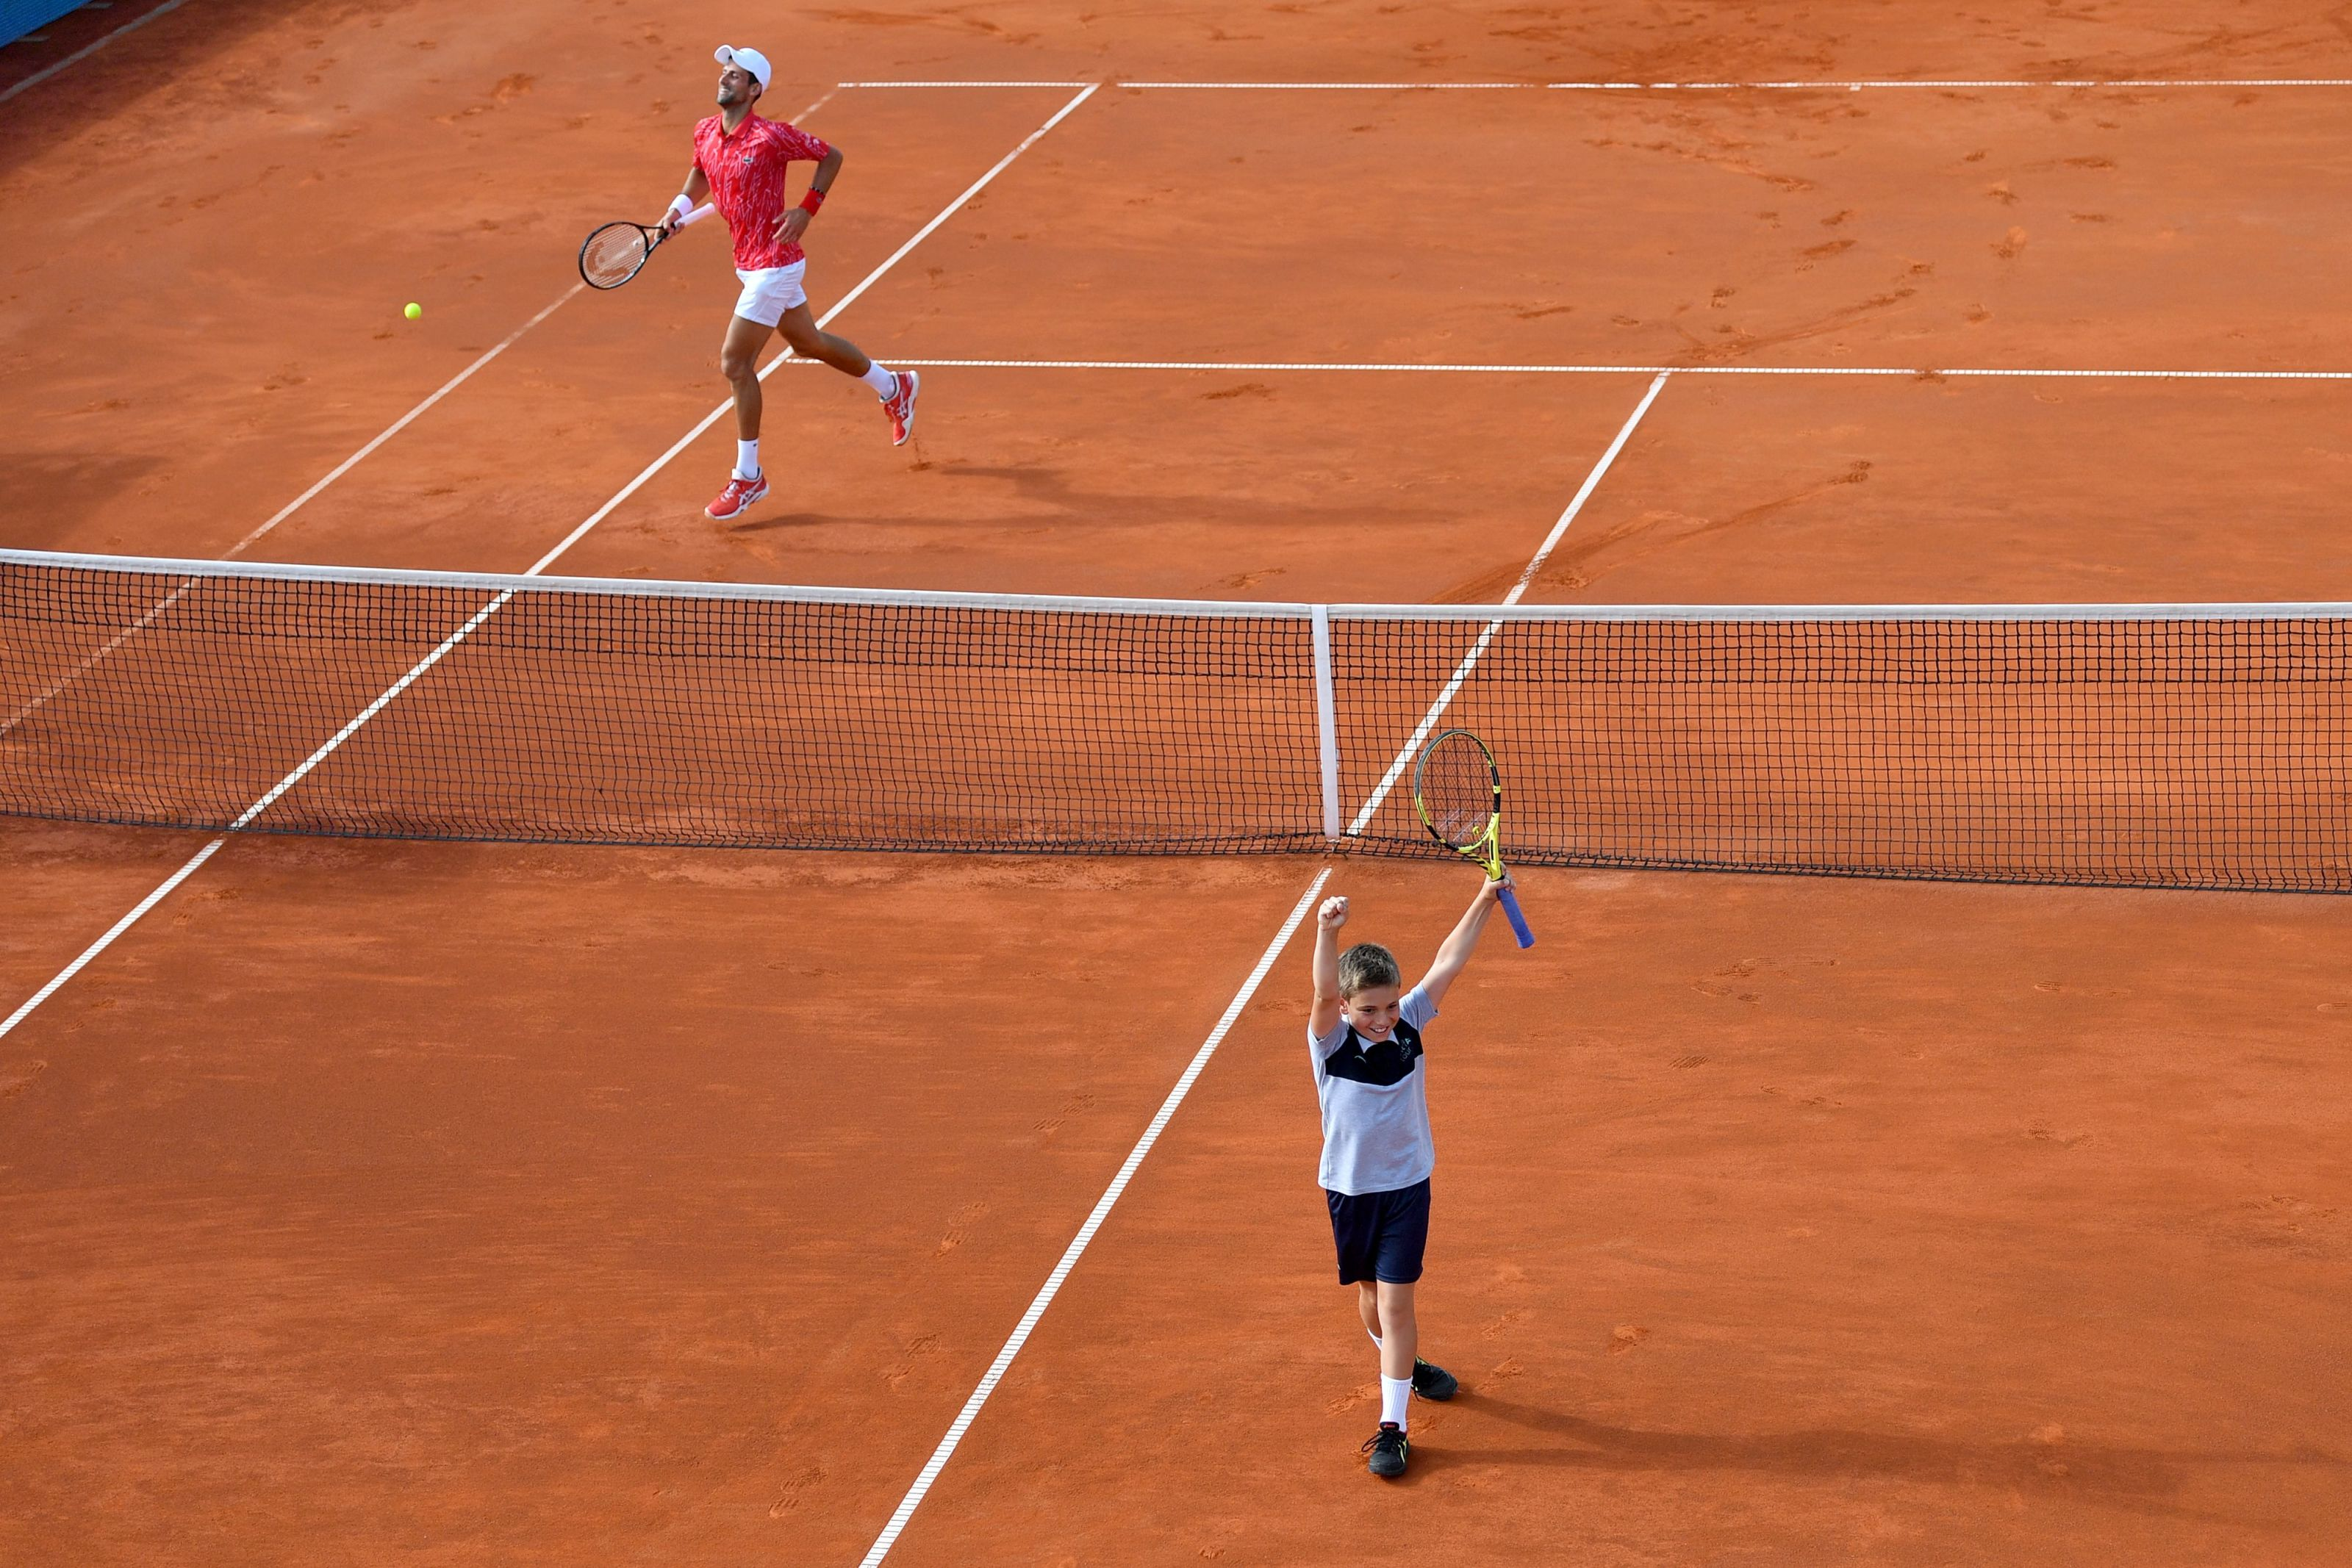 Tennis Is Finally Back Adria Tour Sees Djokovic Lose And A Ball Boy Win